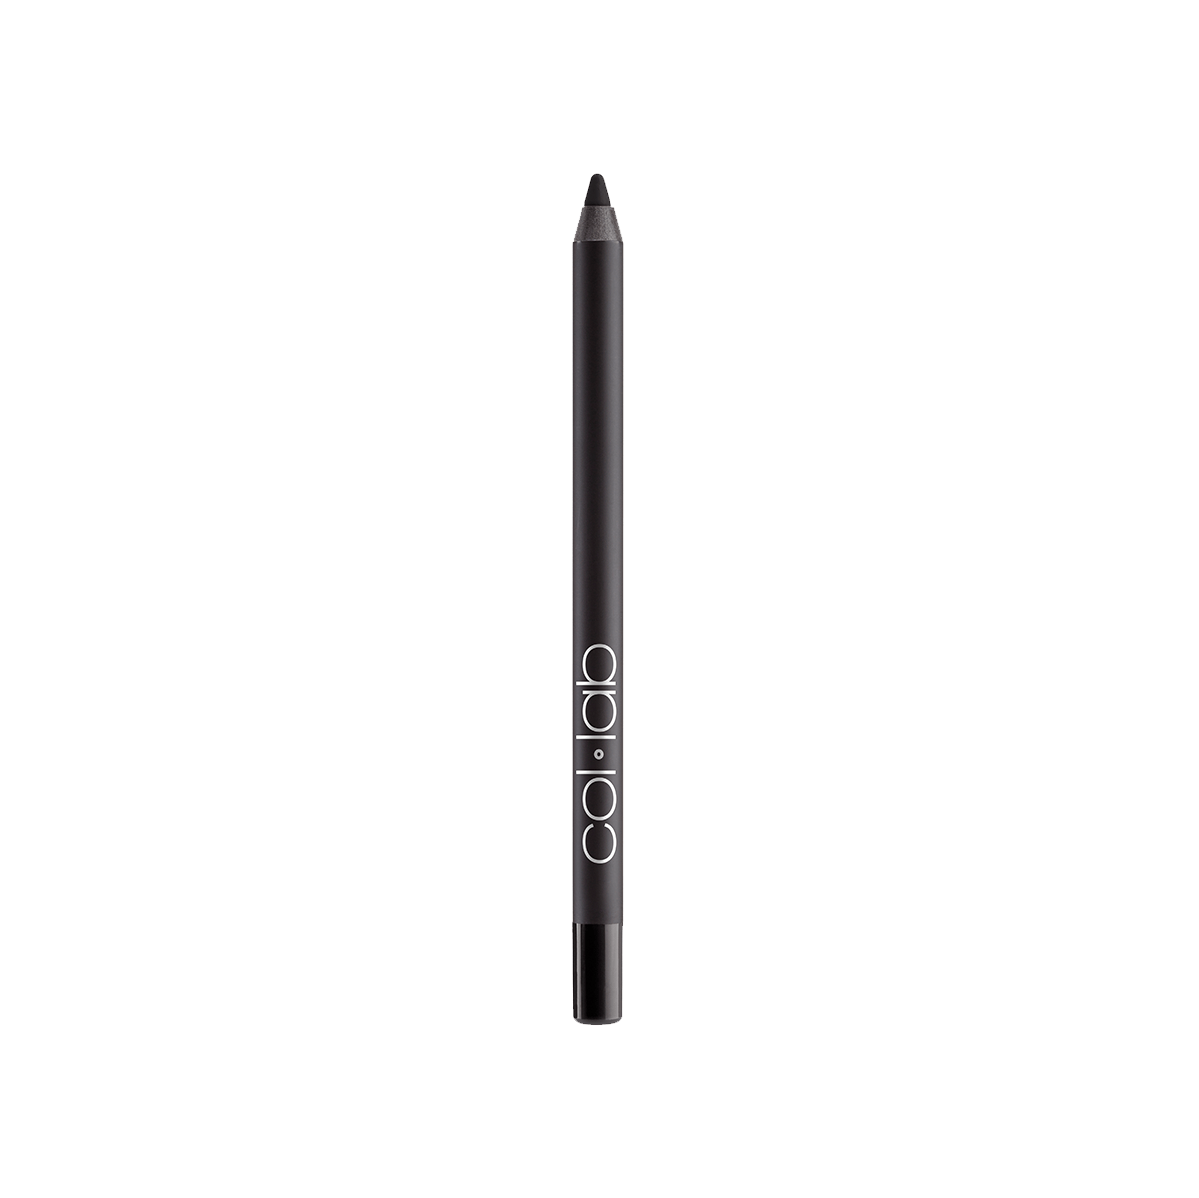 collab-bold-faced liner-waterproof-eye-lining-pencil-dramaqueen-open.png